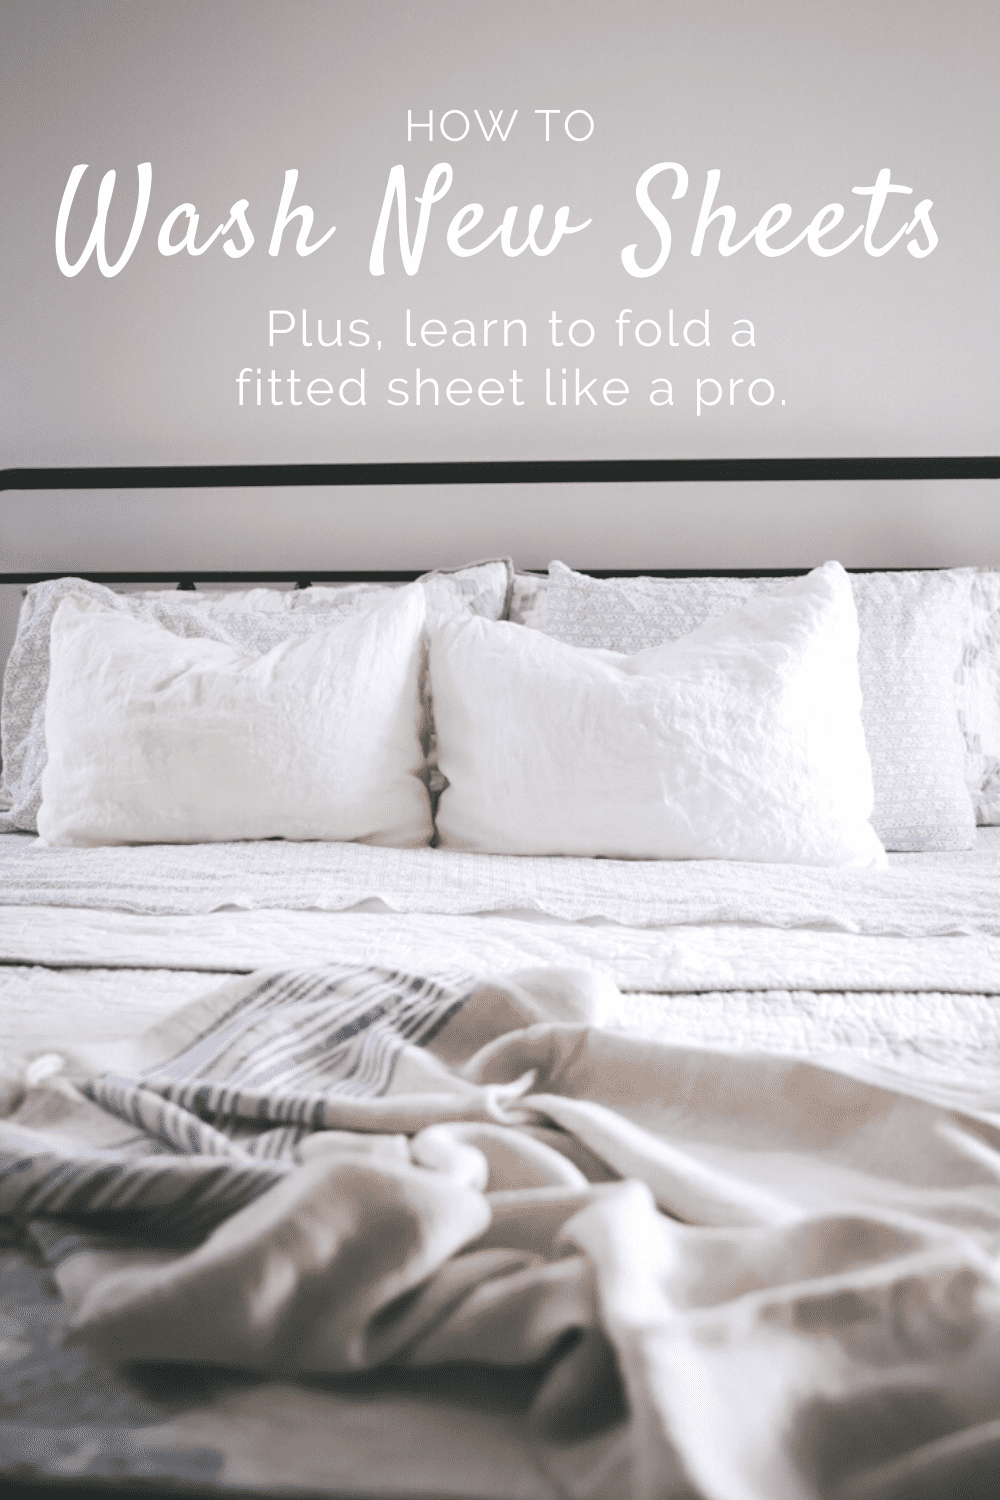 how to wash new sheets and fold a fitted sheet